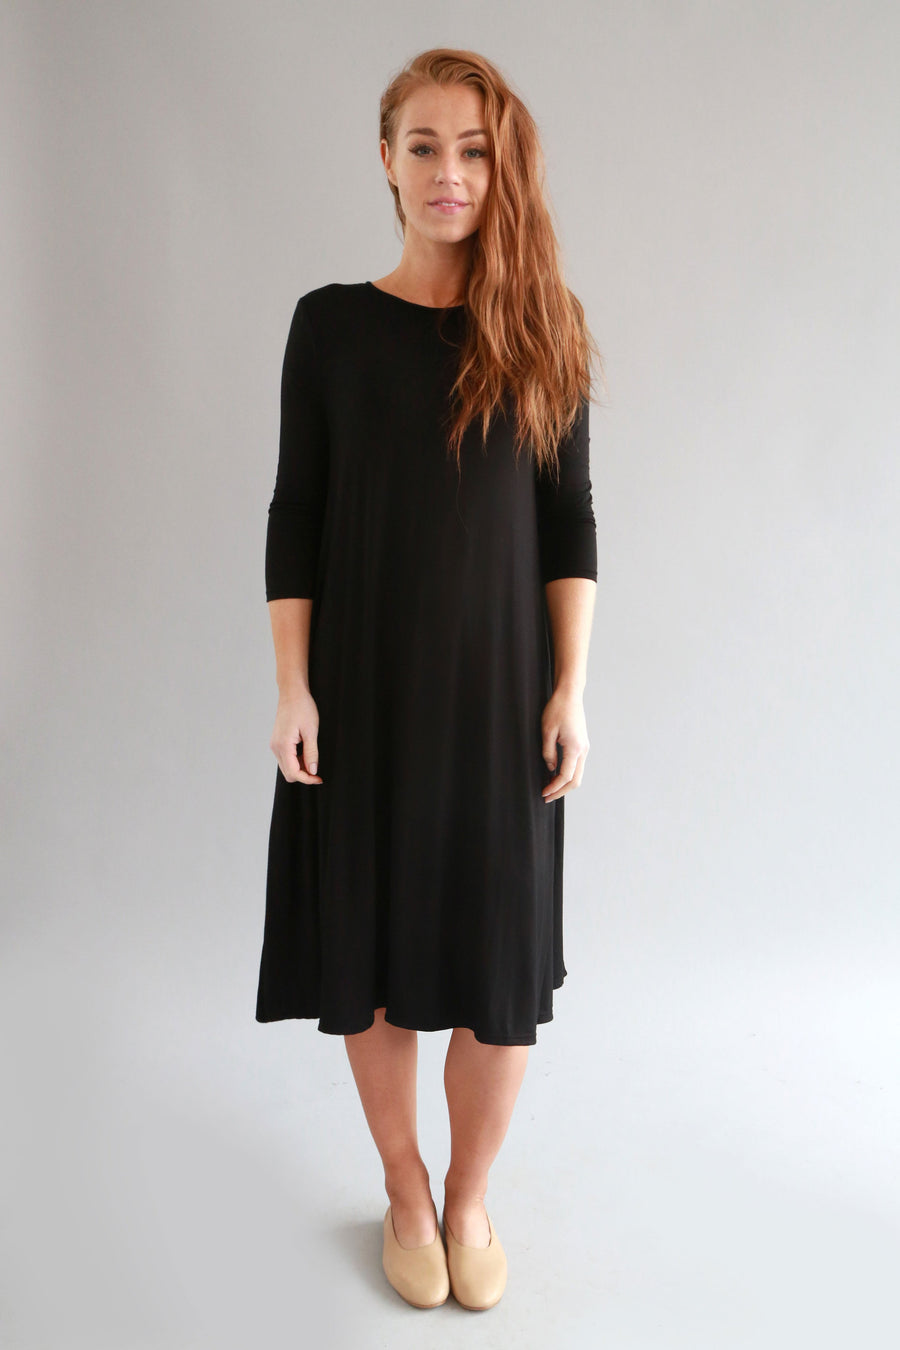 BLACK BASIC DRESS - SOLIKA